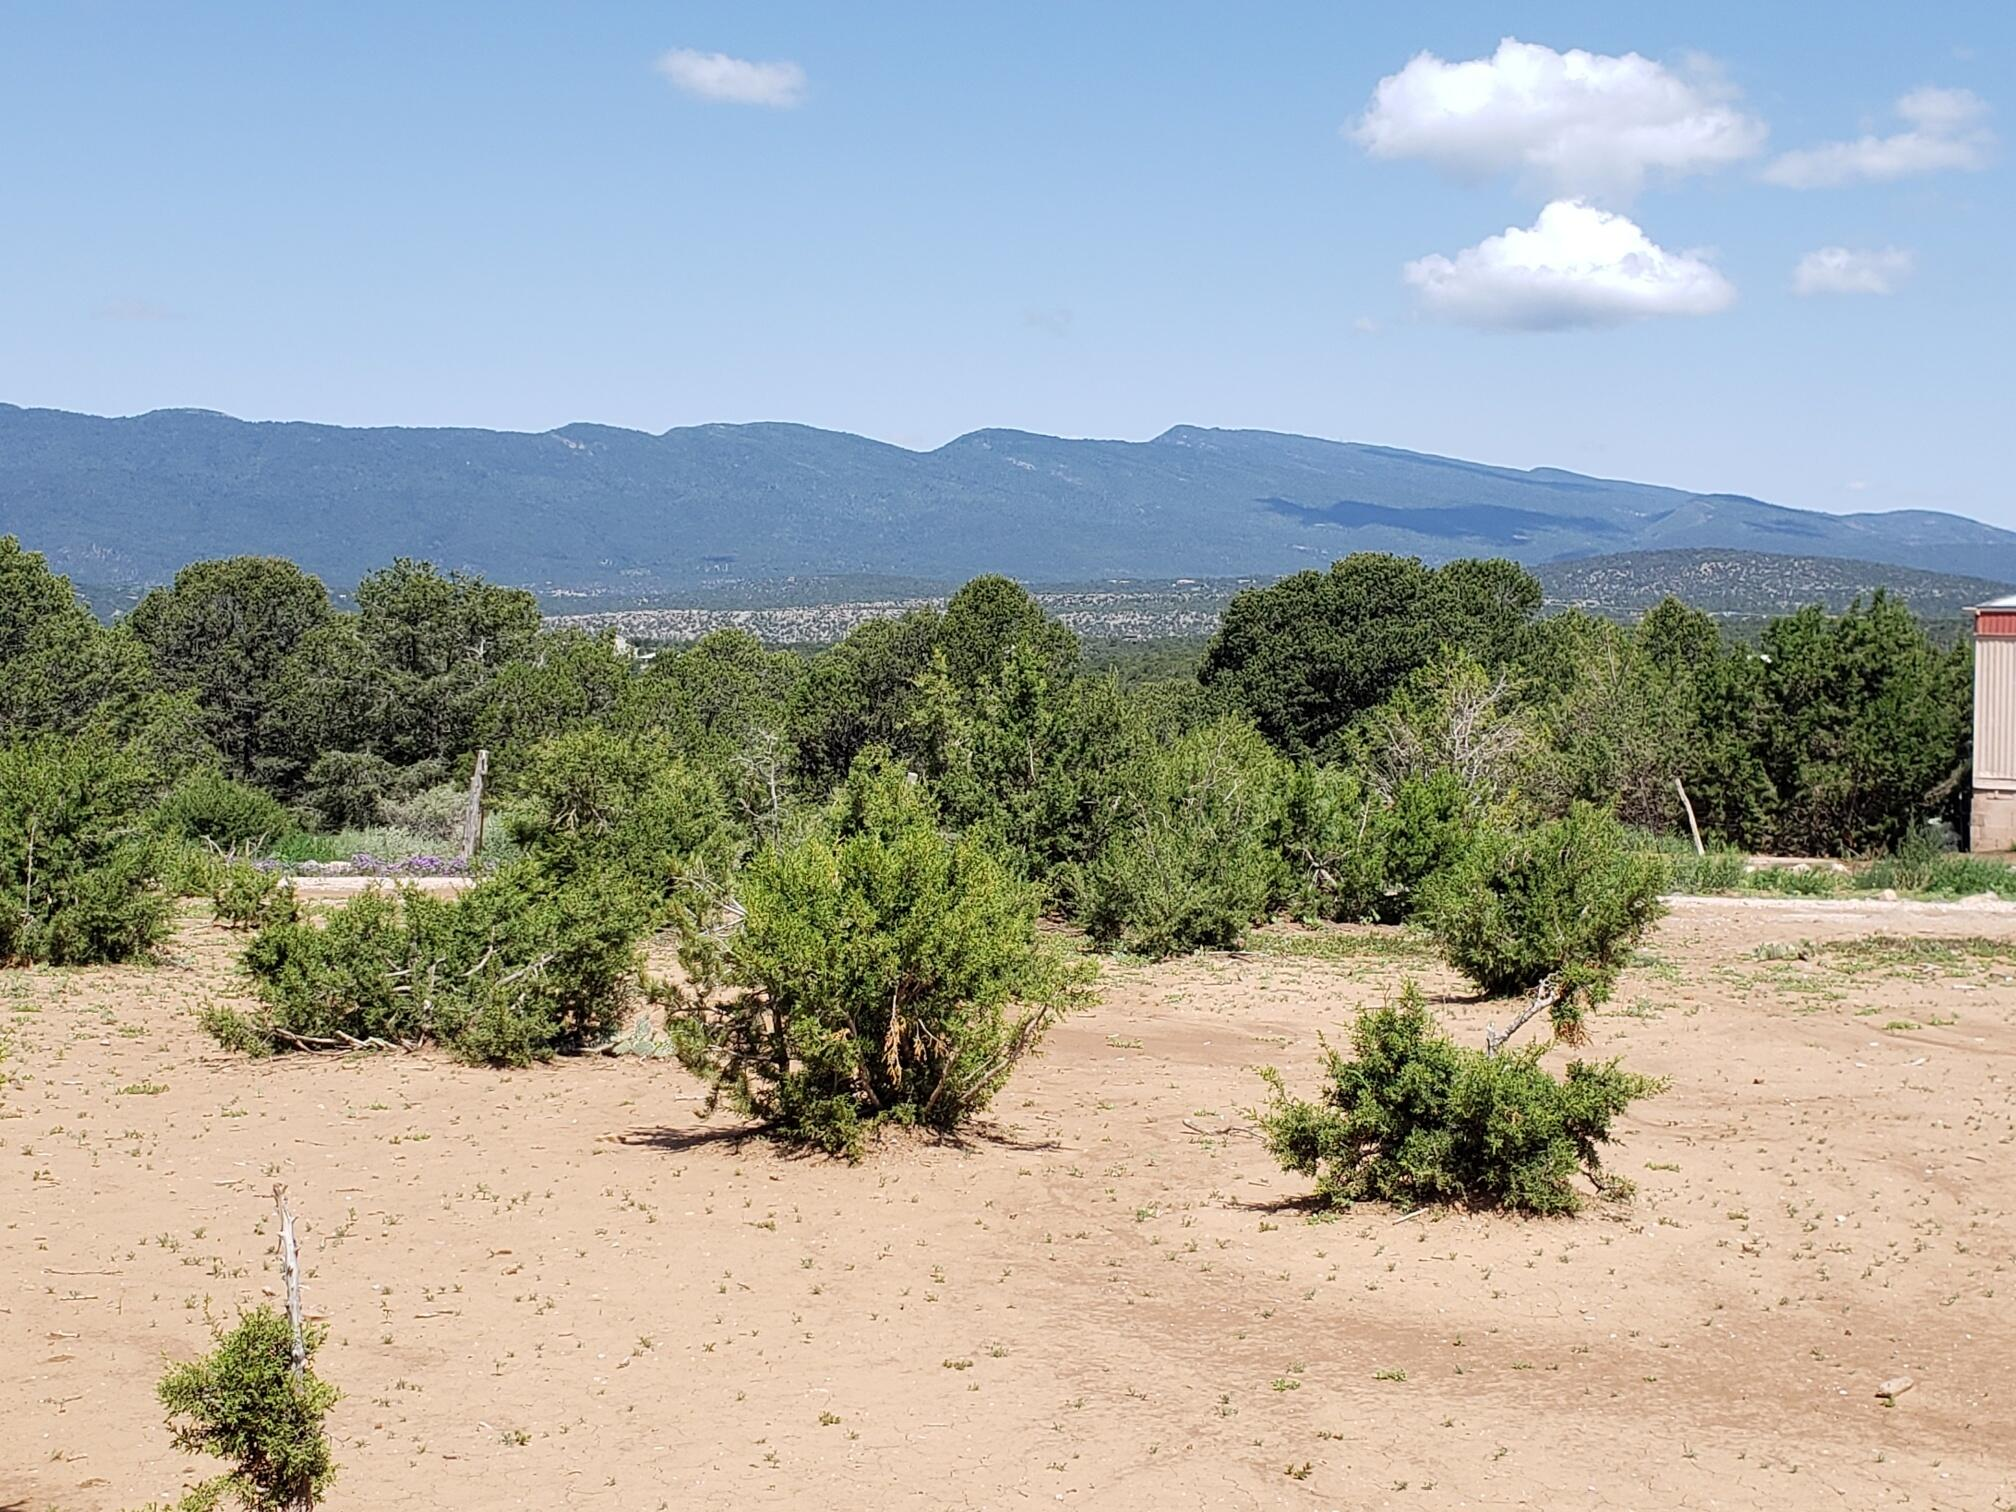 3.74 Acre lot located on a hill with views of the Sandia Mountains and all surrounding mountains. Includes 14 X 80 foot mobile home.  2 Bedrooms and 2 Full Baths. All existing furnishings stay including a pellet stove. New septic tank in June 2021. Water Tested in May 2021. Reports Available. Peaceful Quiet location perfect for a weekend getaway. Great lot to build your dream home. Short distance to Tijeras, Cedar Crest or Edgewood.